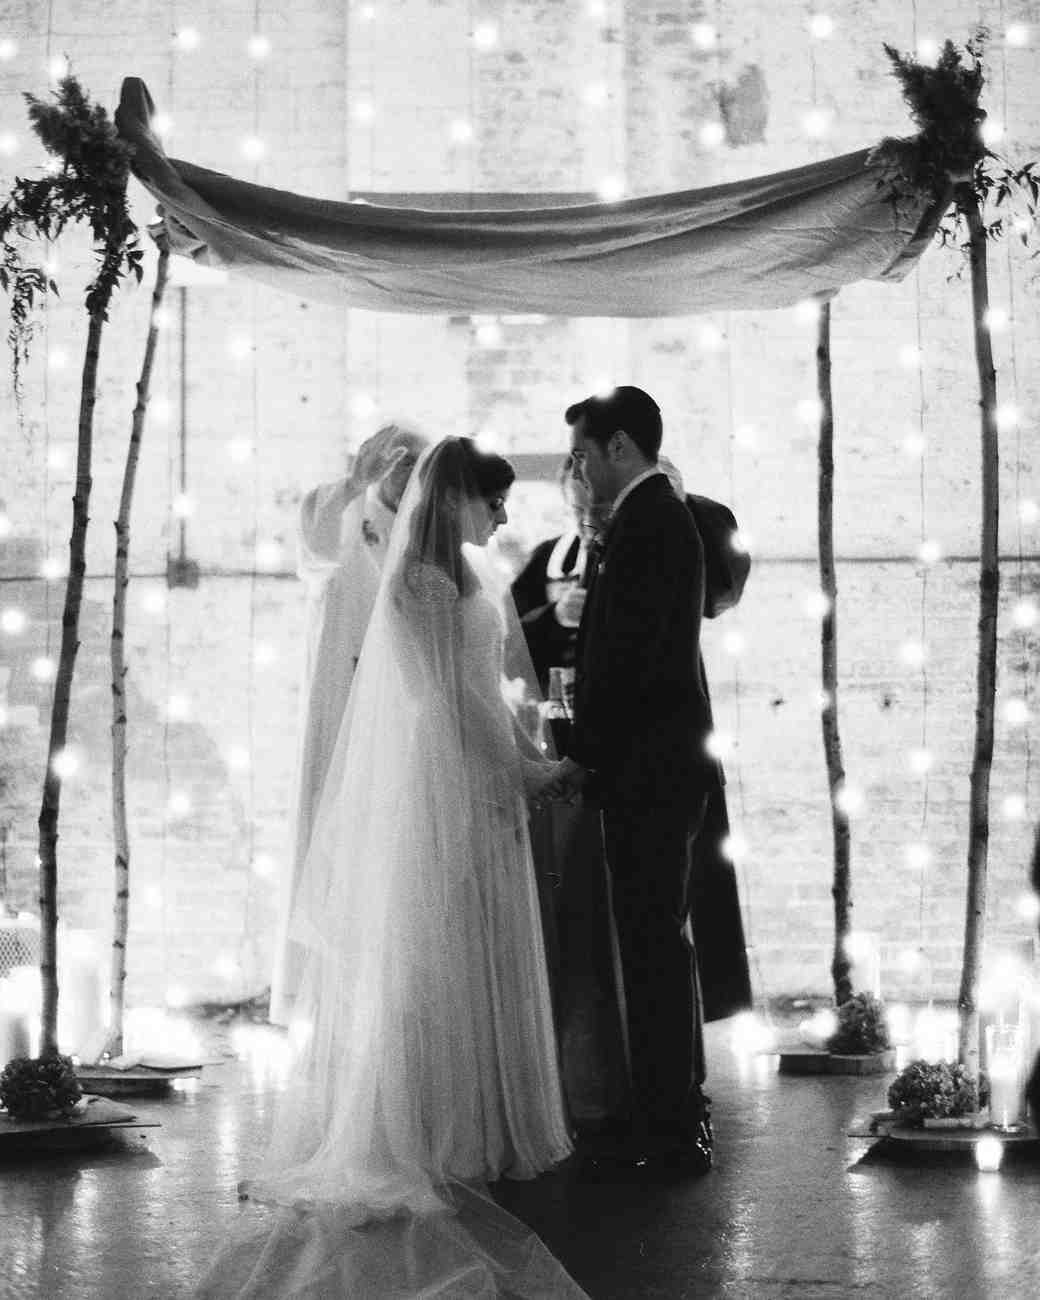 lauren jay rw0513 00334_vert?itok=fYzgXZ_u a basic wedding ceremony outline for planning the order of your i